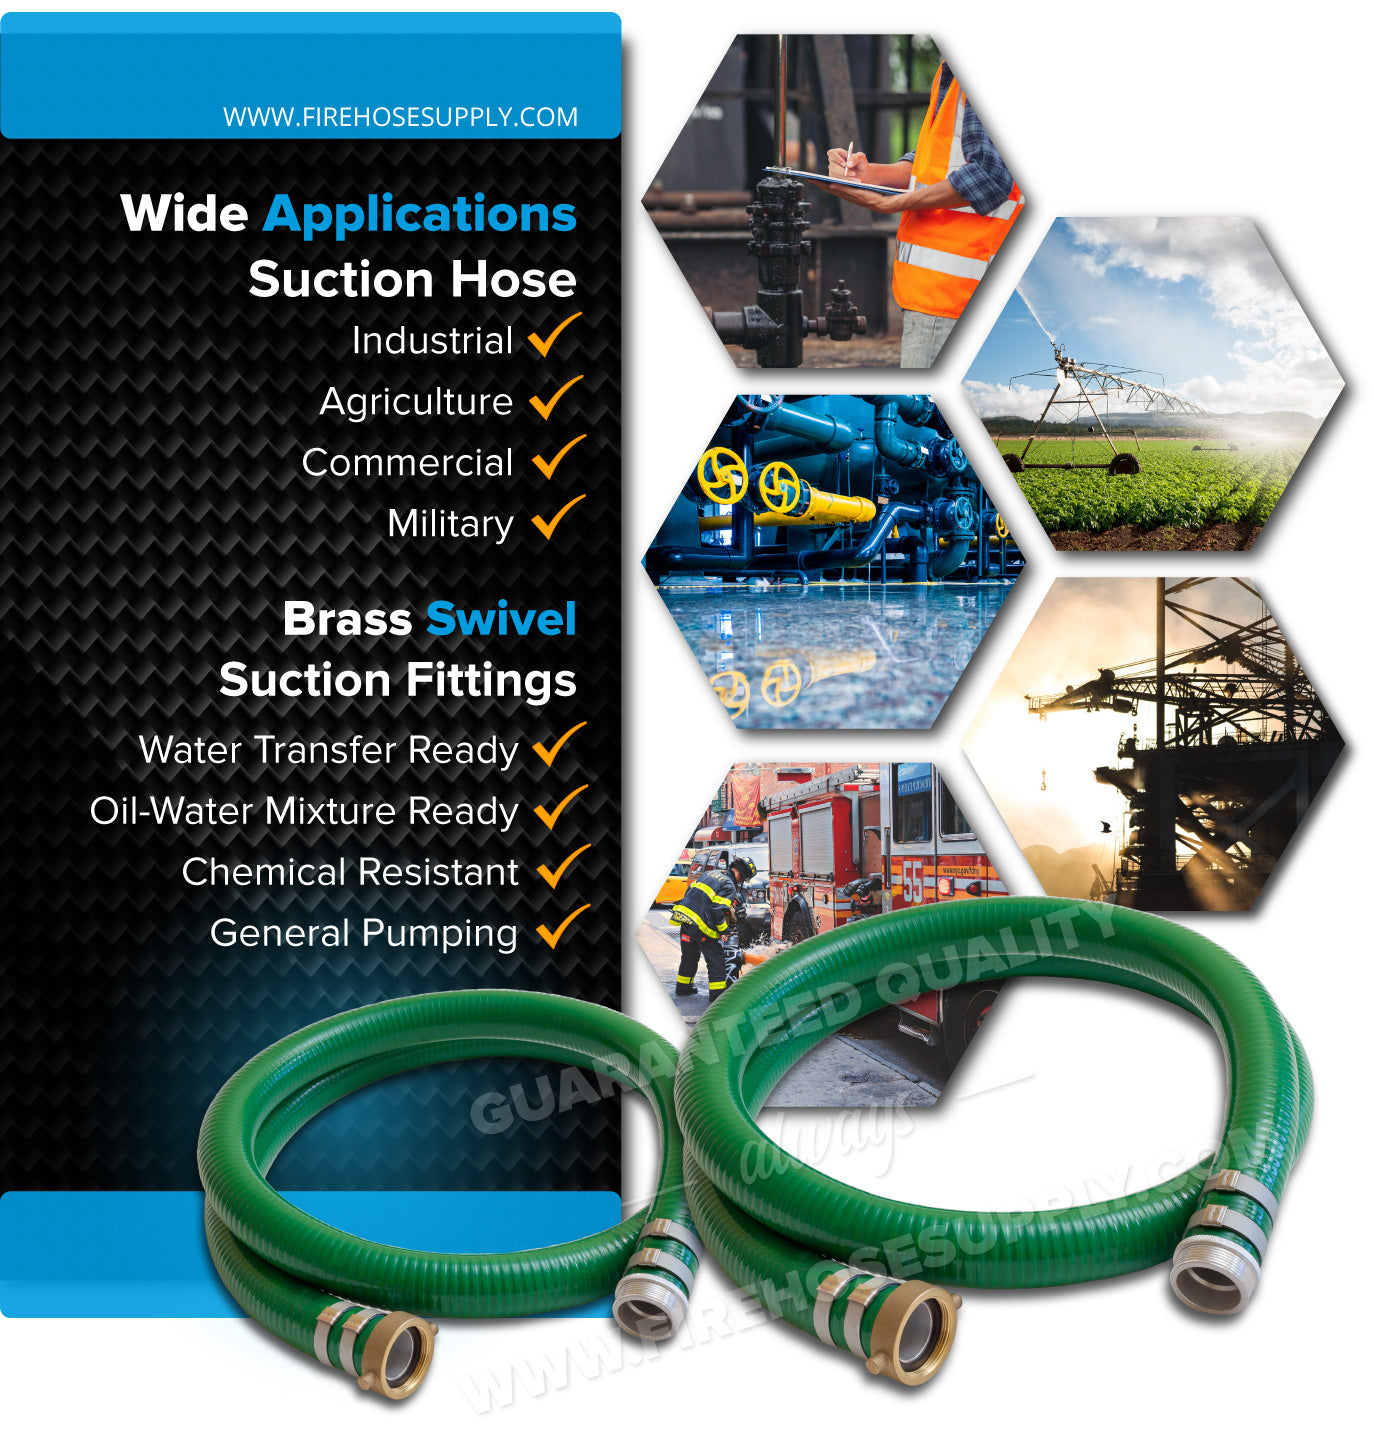 3 Inch Threaded Female x Male Green Suction Hose Wide Applications